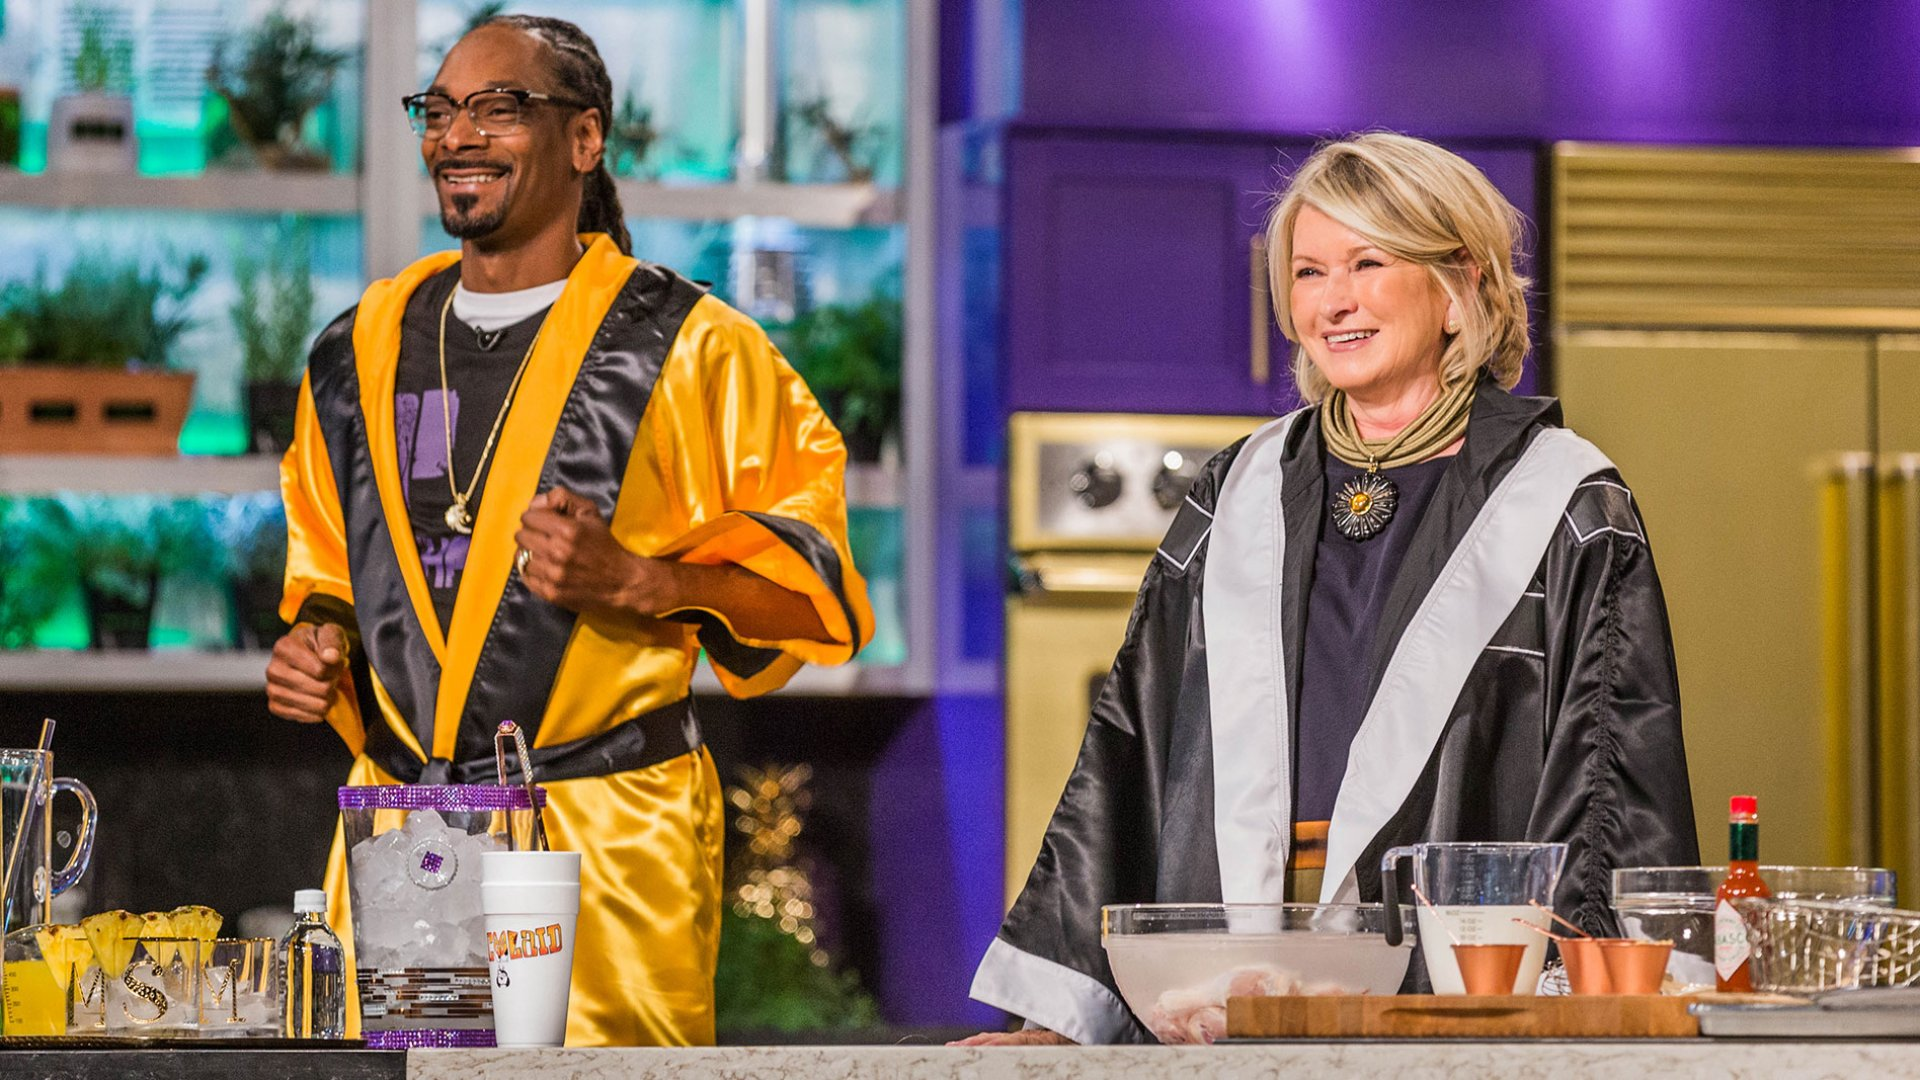 Meet the Entrepreneur Behind 'Martha and Snoop's Potluck Dinner Party'